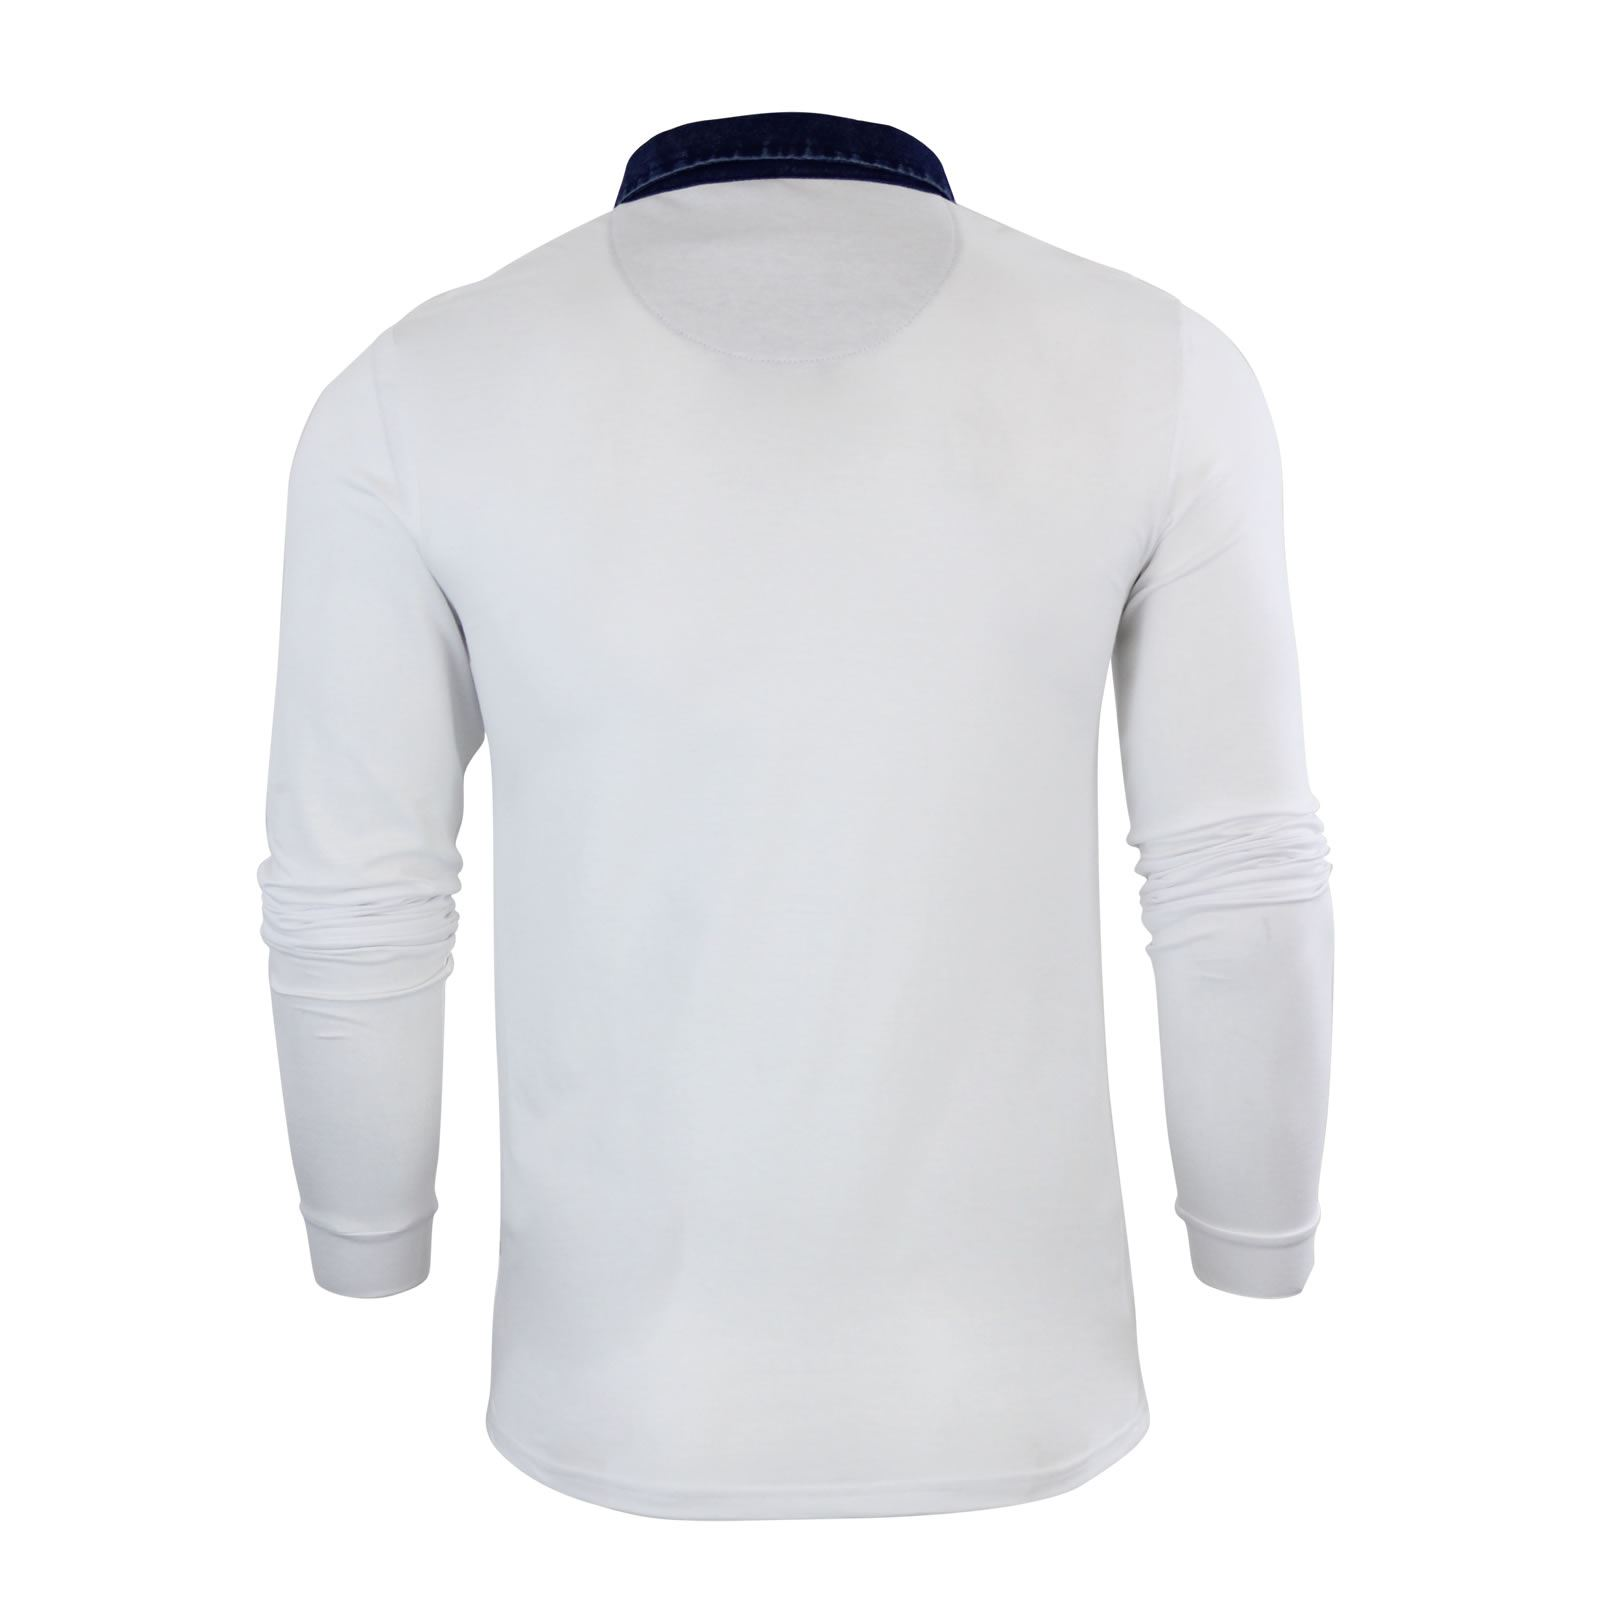 Mens-Polo-Shirt-Brave-Soul-Long-Sleeve-Collared-Top-In-Various-Styles thumbnail 15